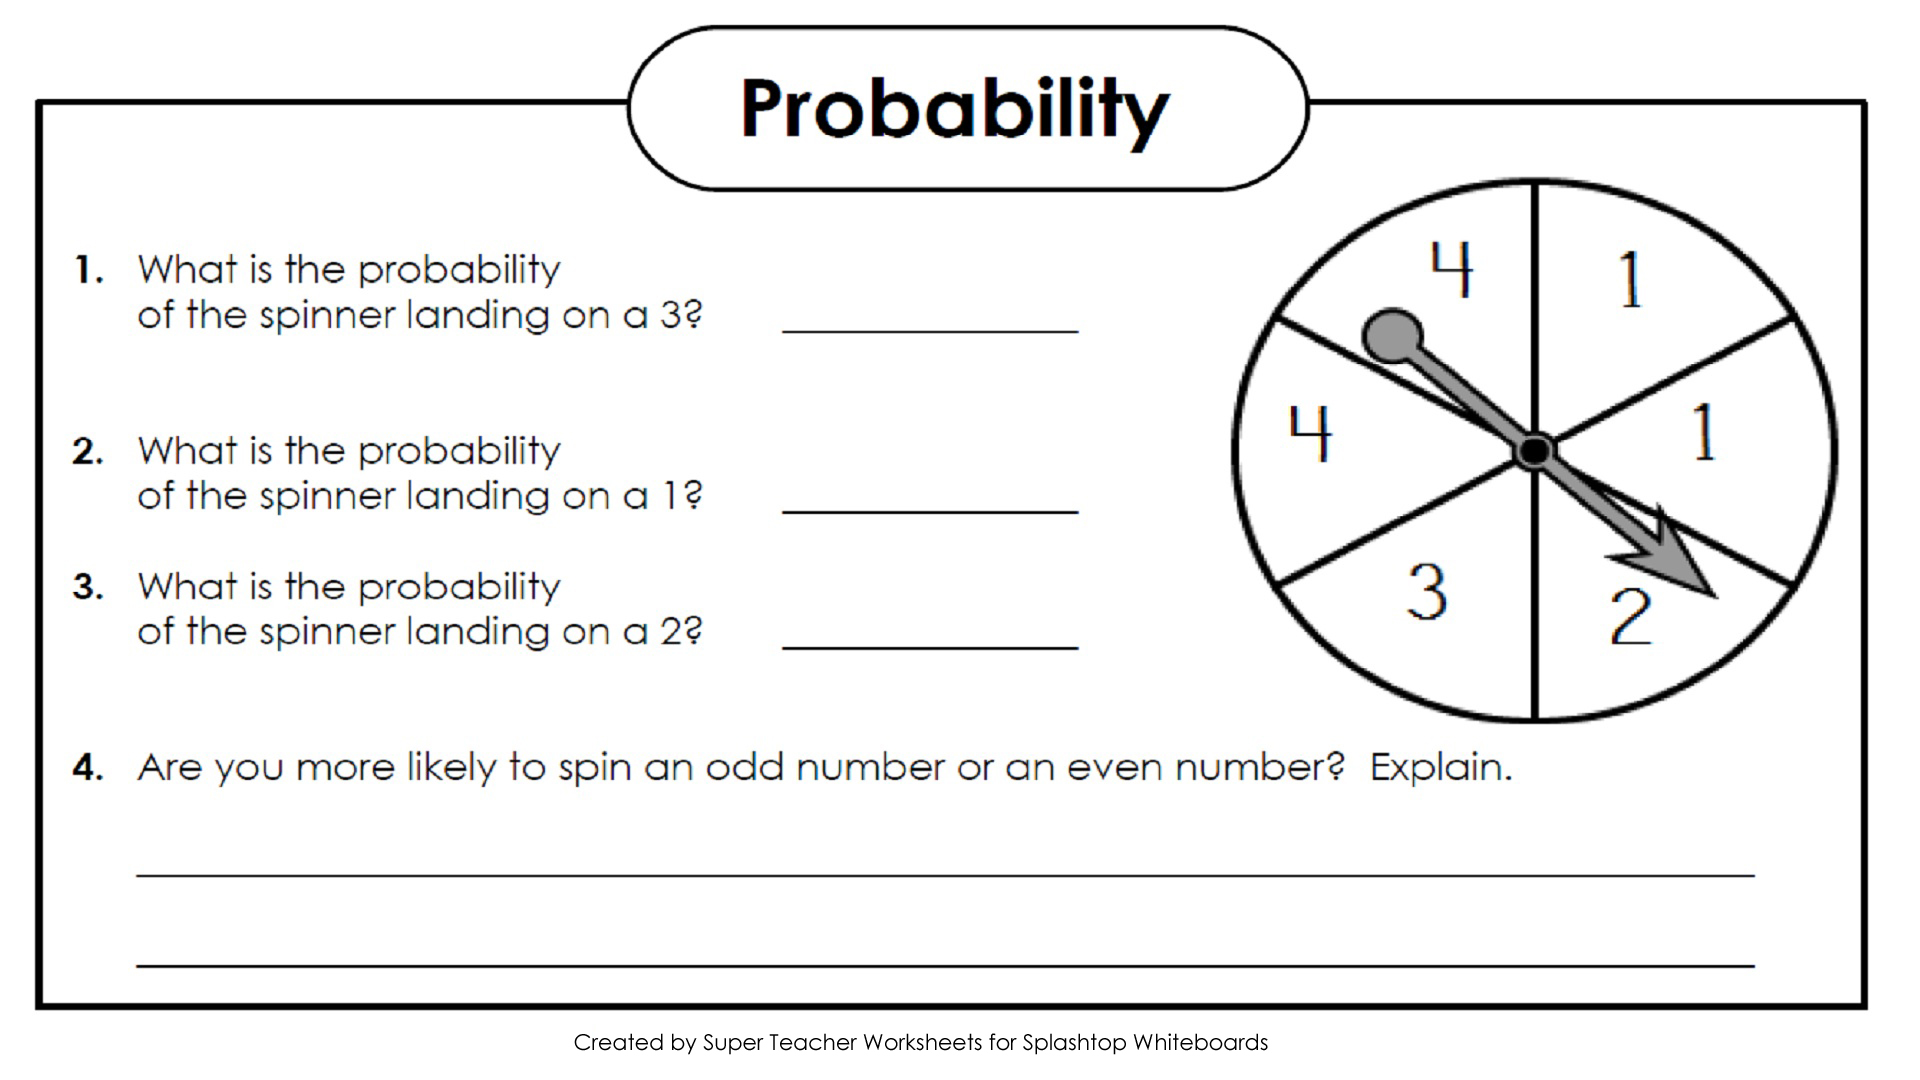 worksheet Superteacher Worksheets splashtop whiteboard background graphics probability spinner 1